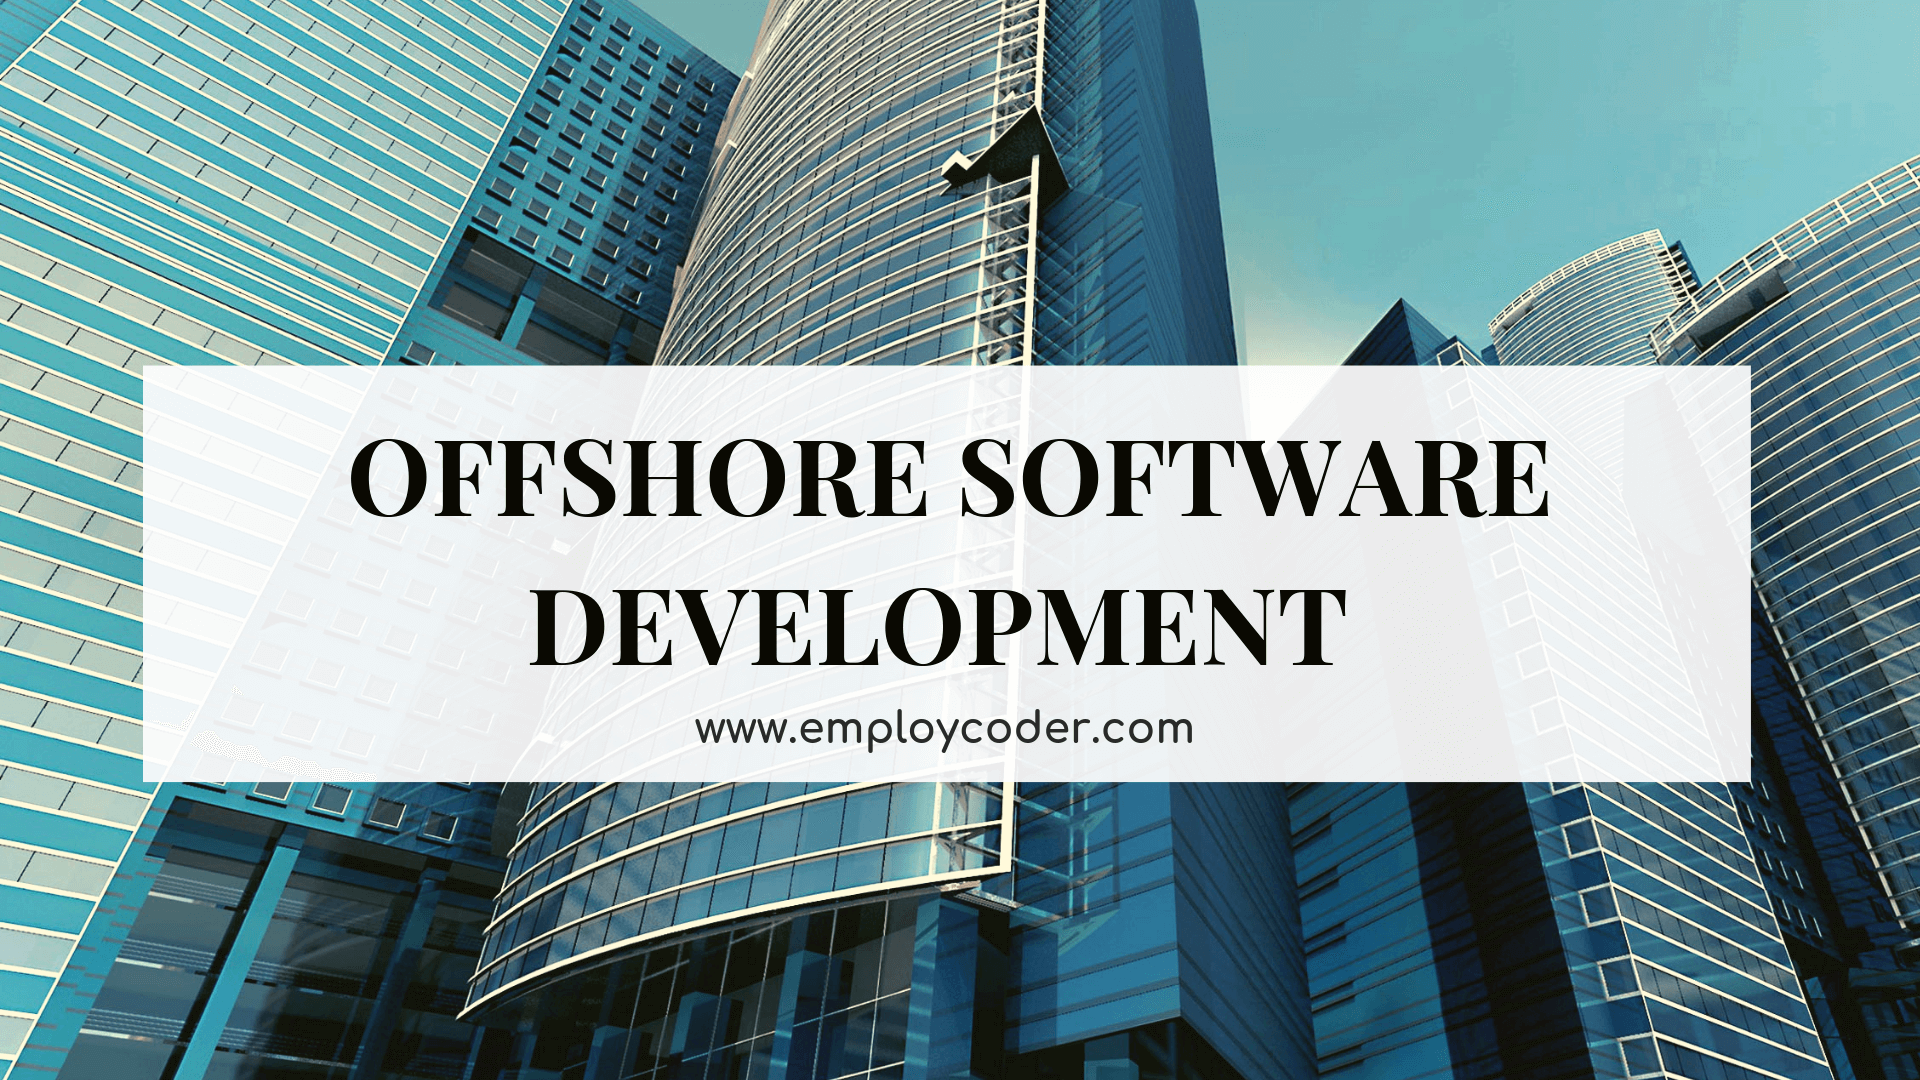 How offshore software development is helping organizations optimize business outcomes.